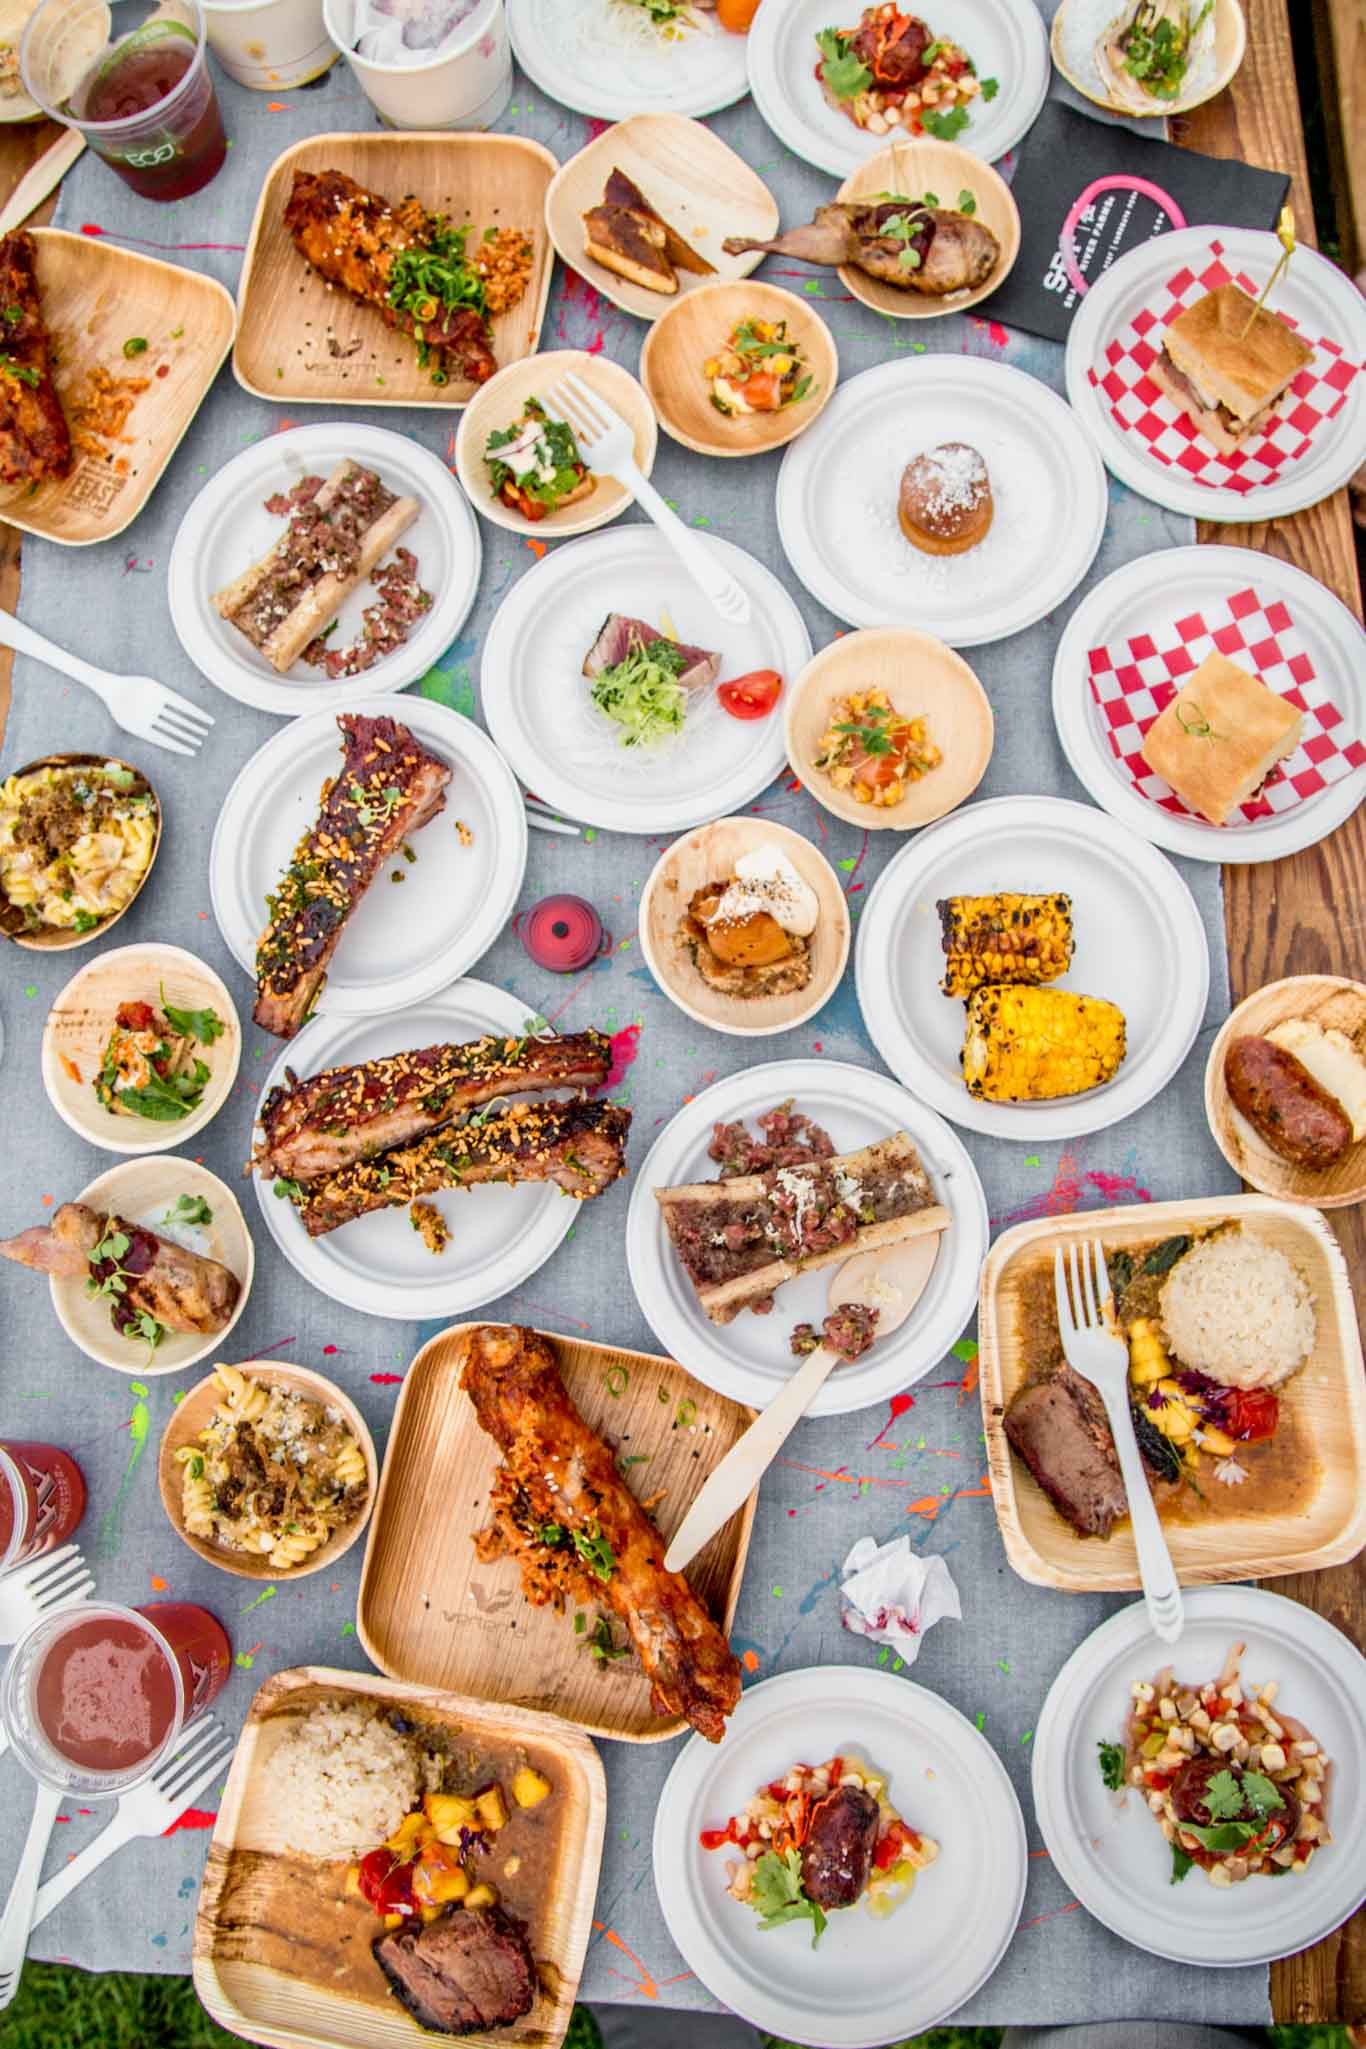 FEAST Portland - Overhead shot of table filled with lots of small plates of food.